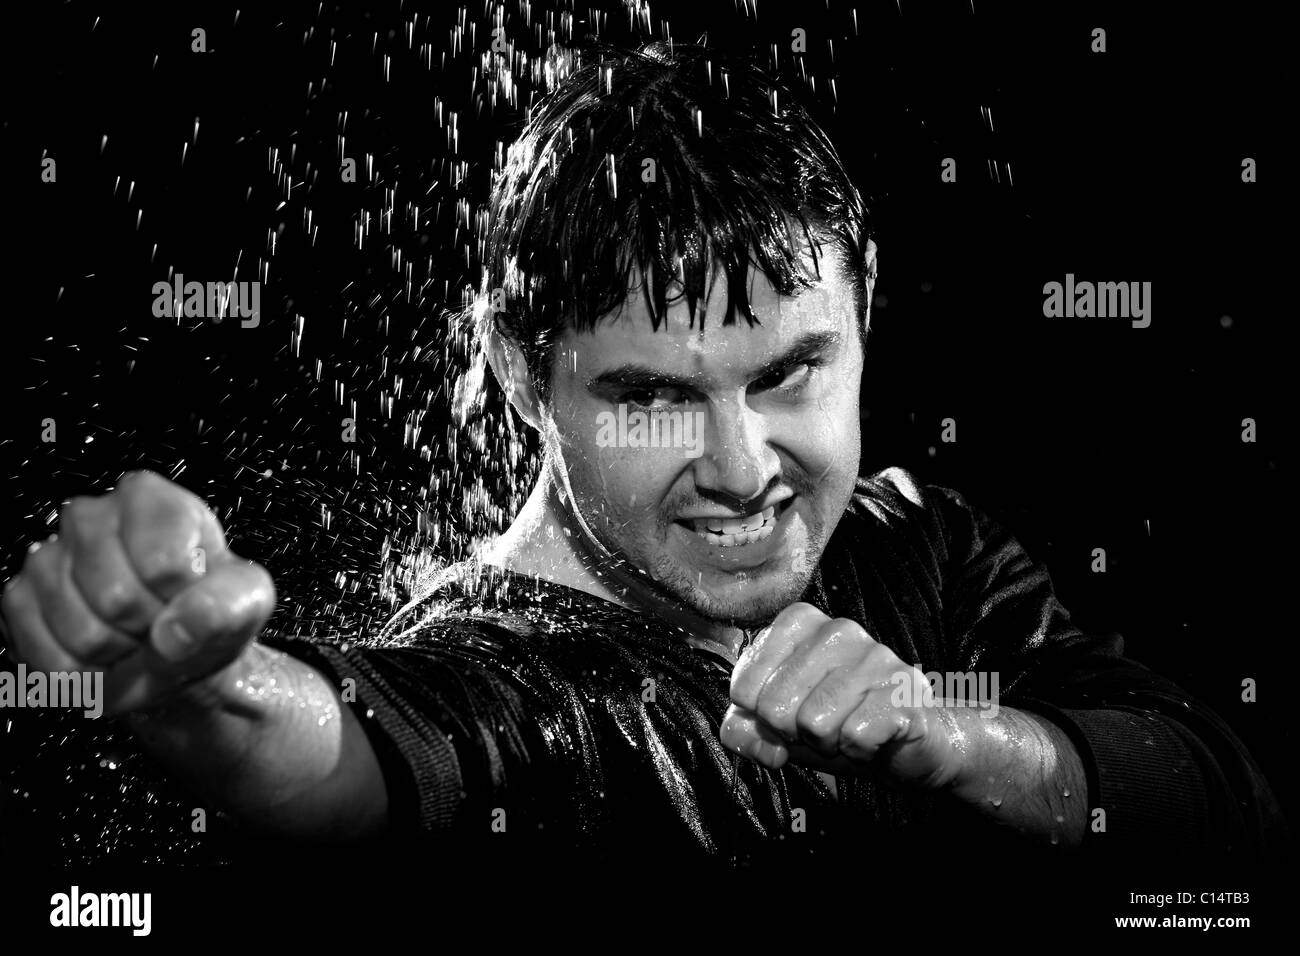 A young man wearing a jacket poses in a wushu stance while it rains down on him. - Stock Image